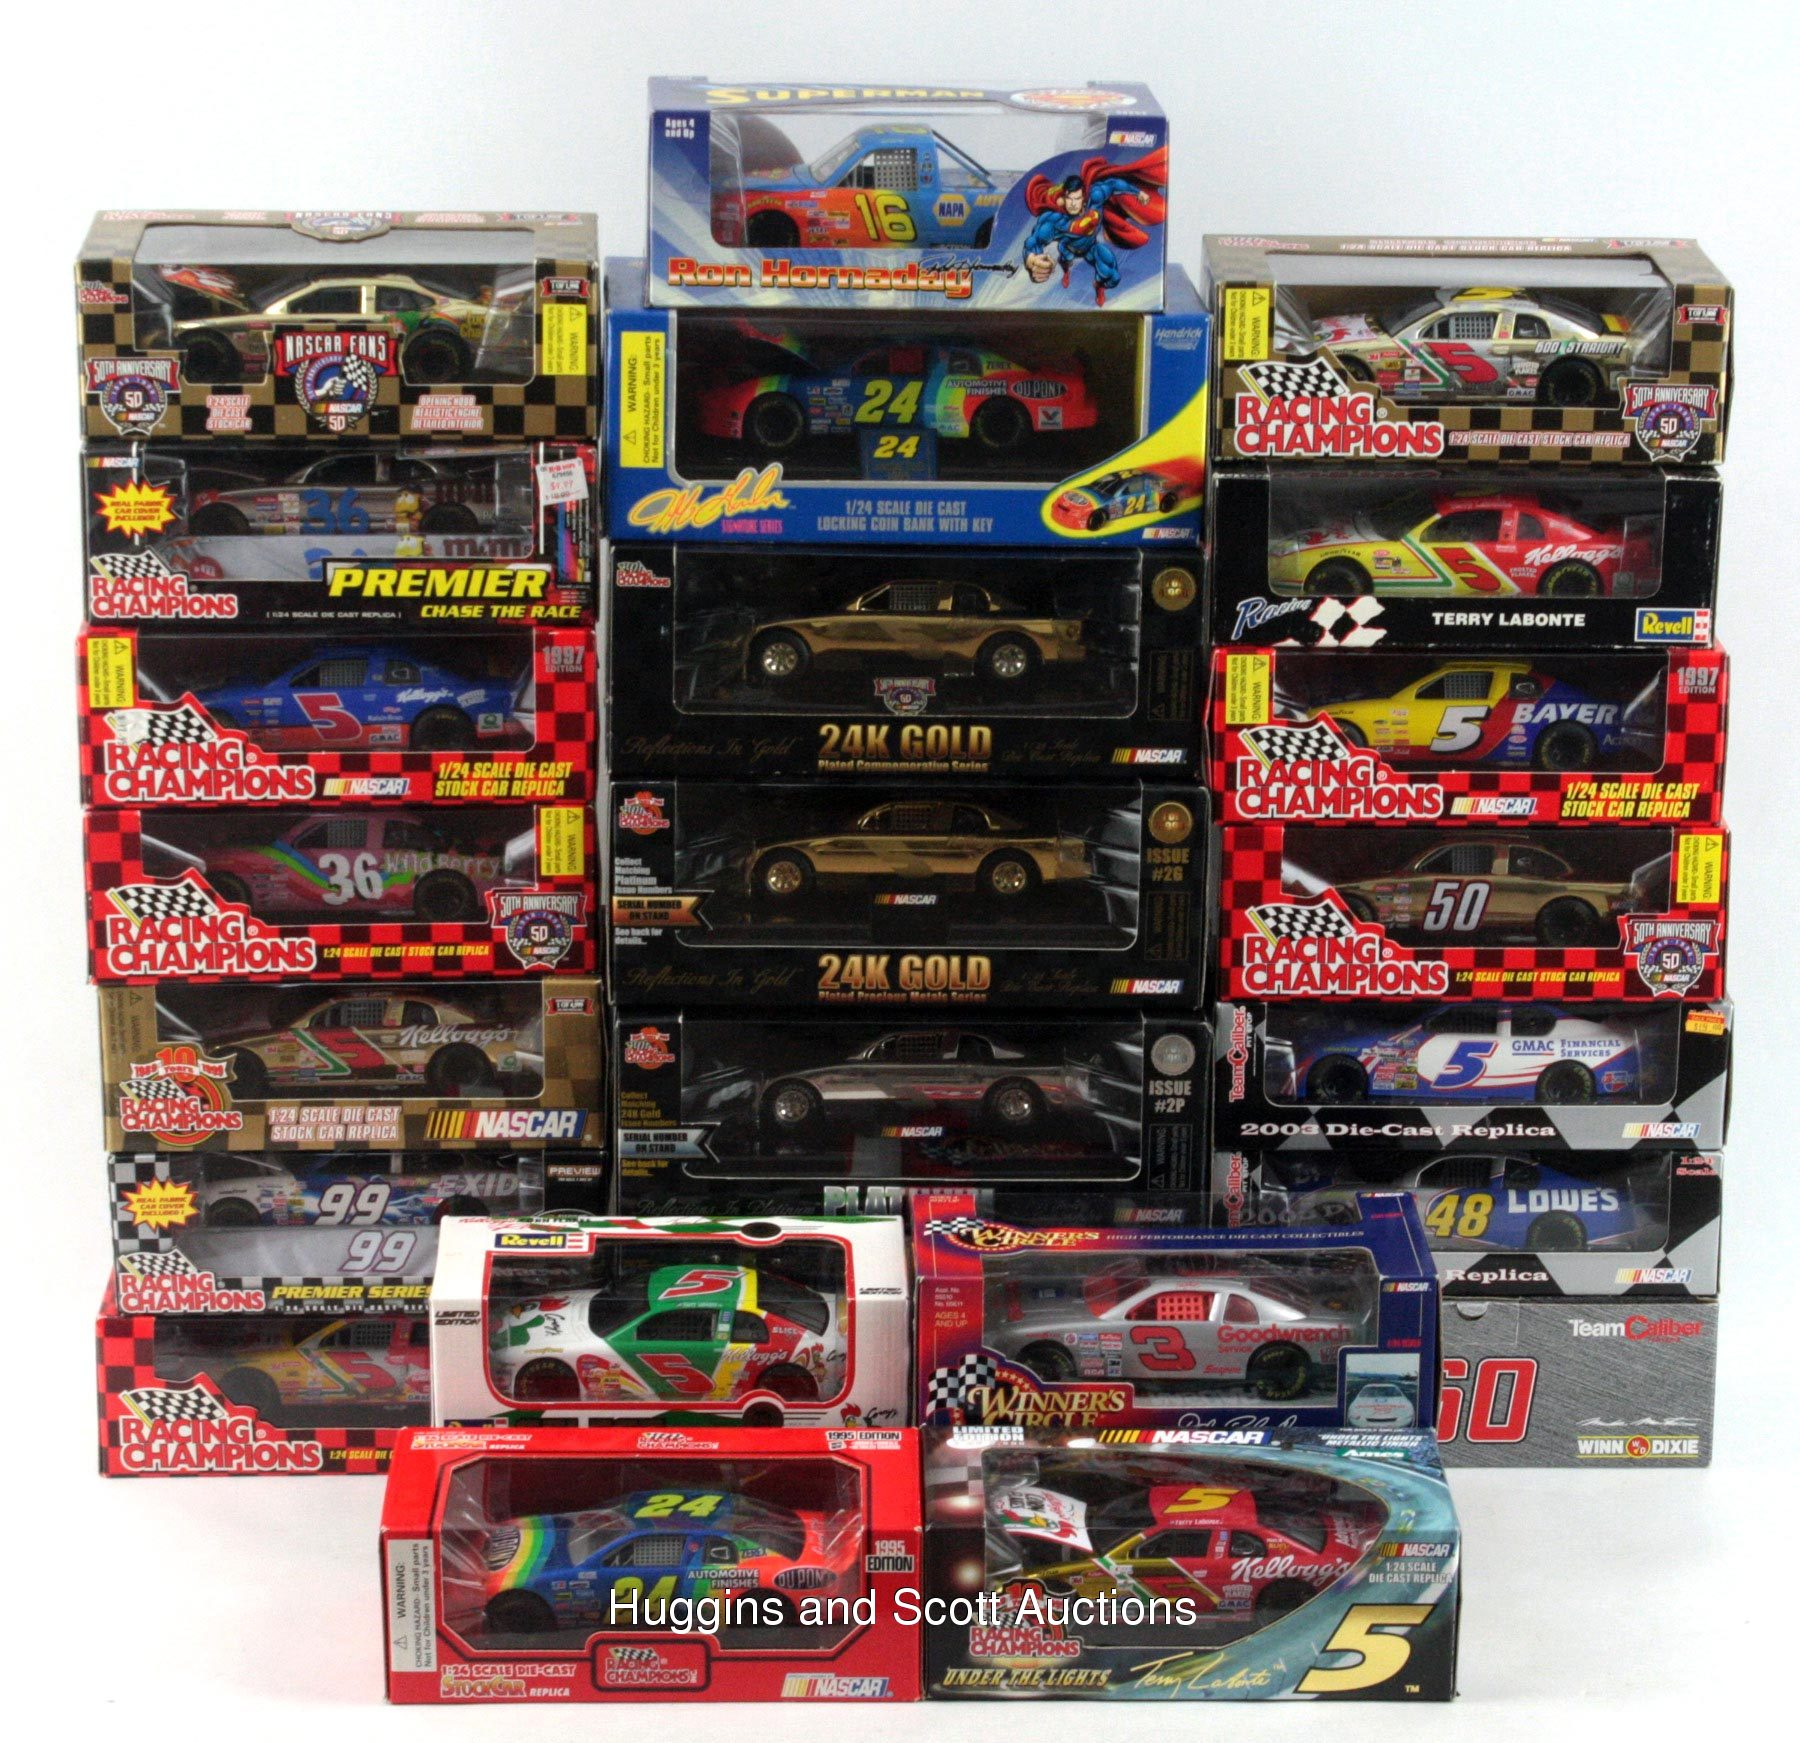 nascar toy model die cast car collection of 133